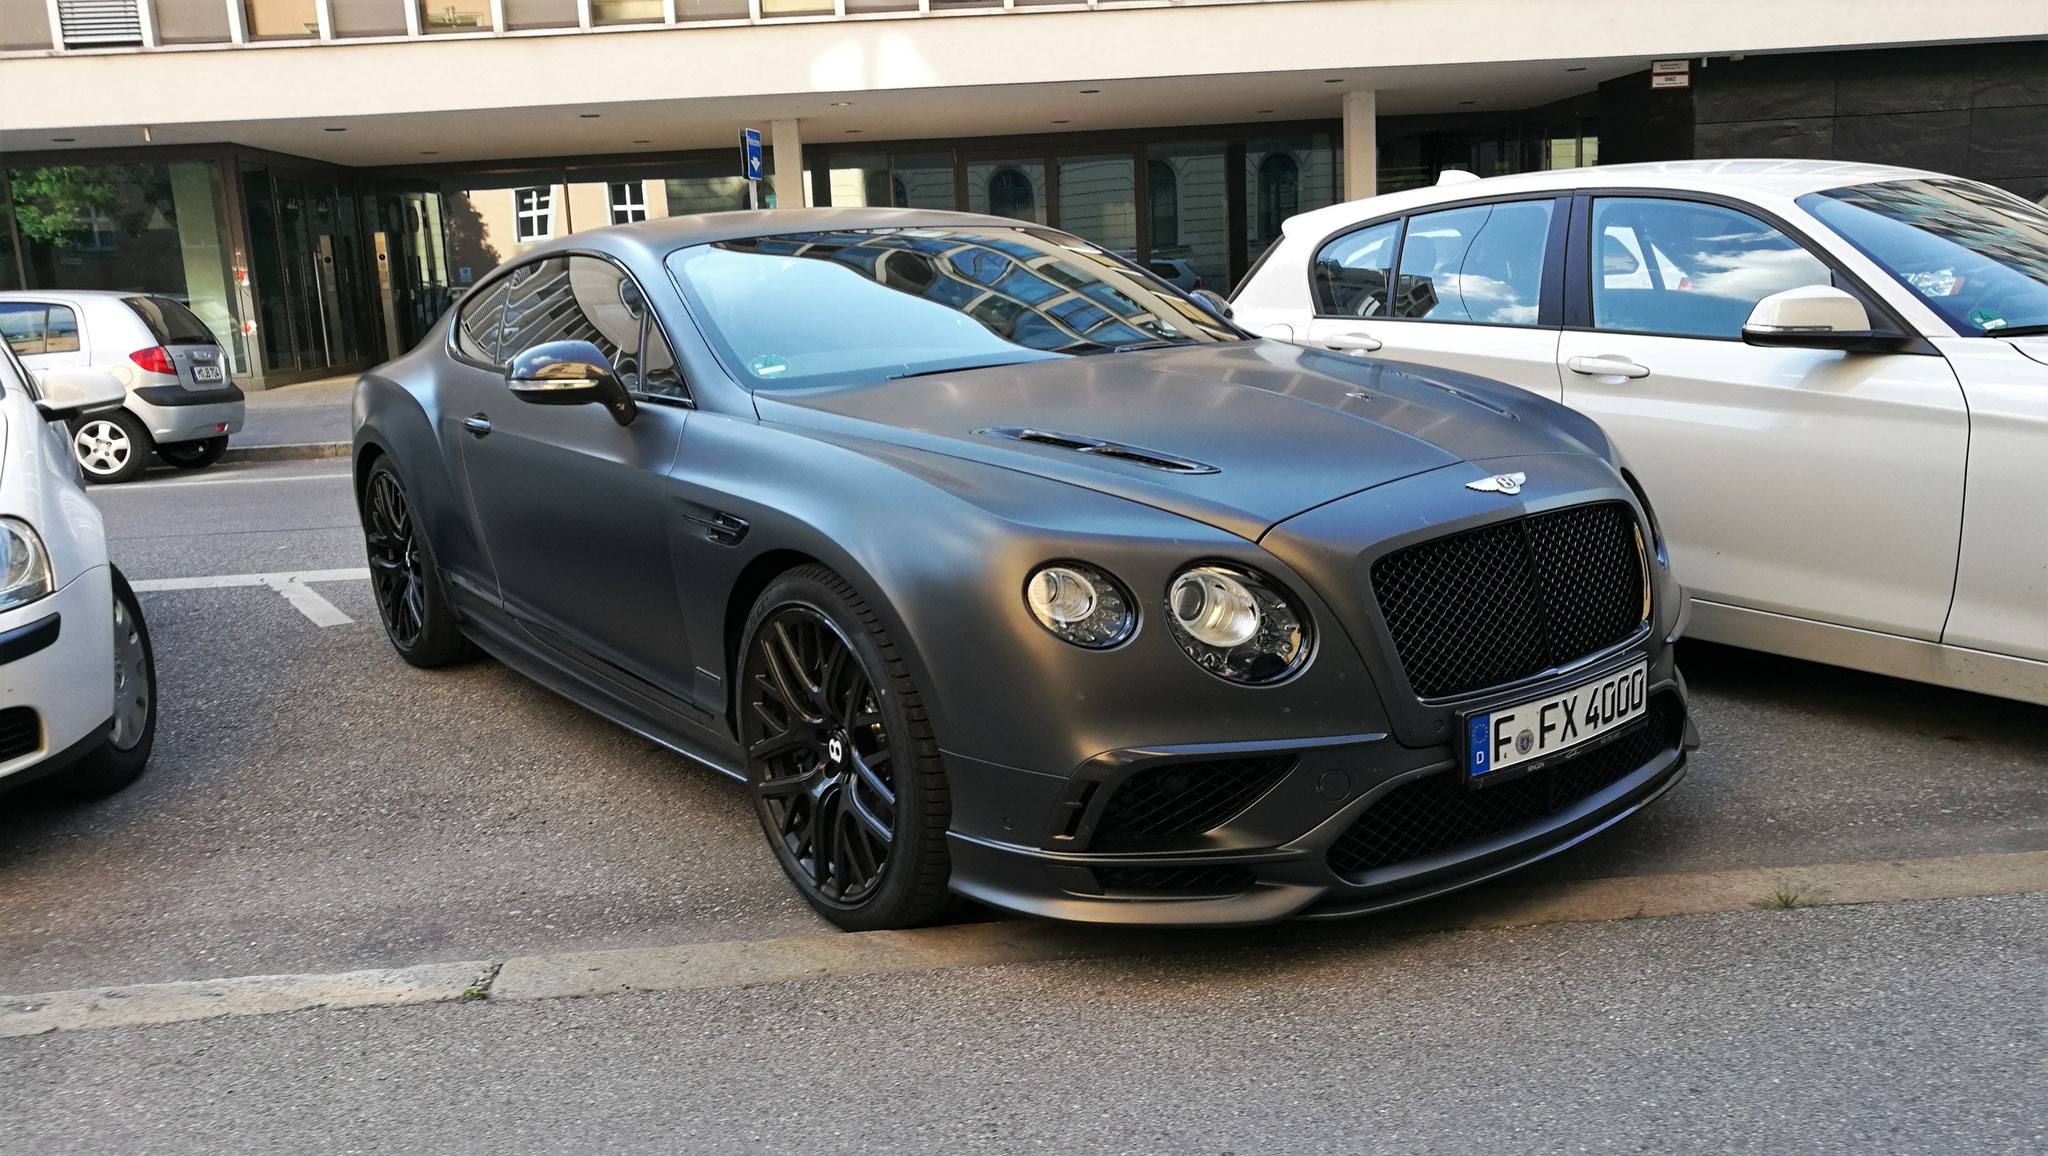 Bentley Continental GT Supersports - F-FX-4000